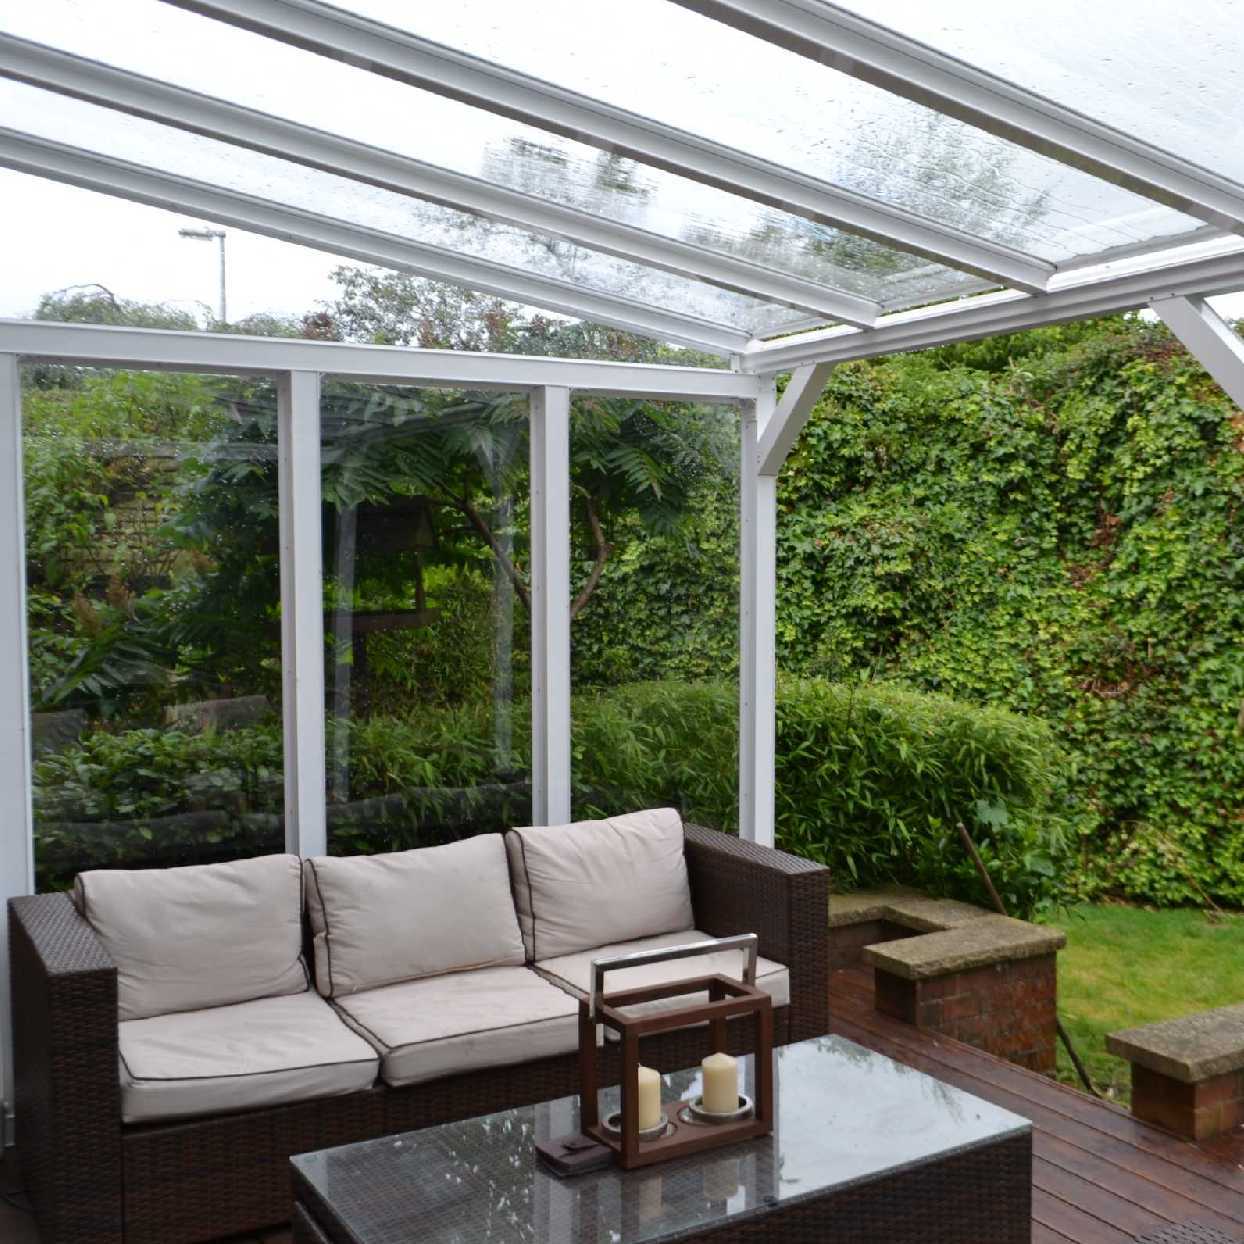 Great selection of Omega Smart White Lean-To Canopy with 16mm Polycarbonate Glazing - 7.8m (W) x 4.0m (P), (4) Supporting Posts